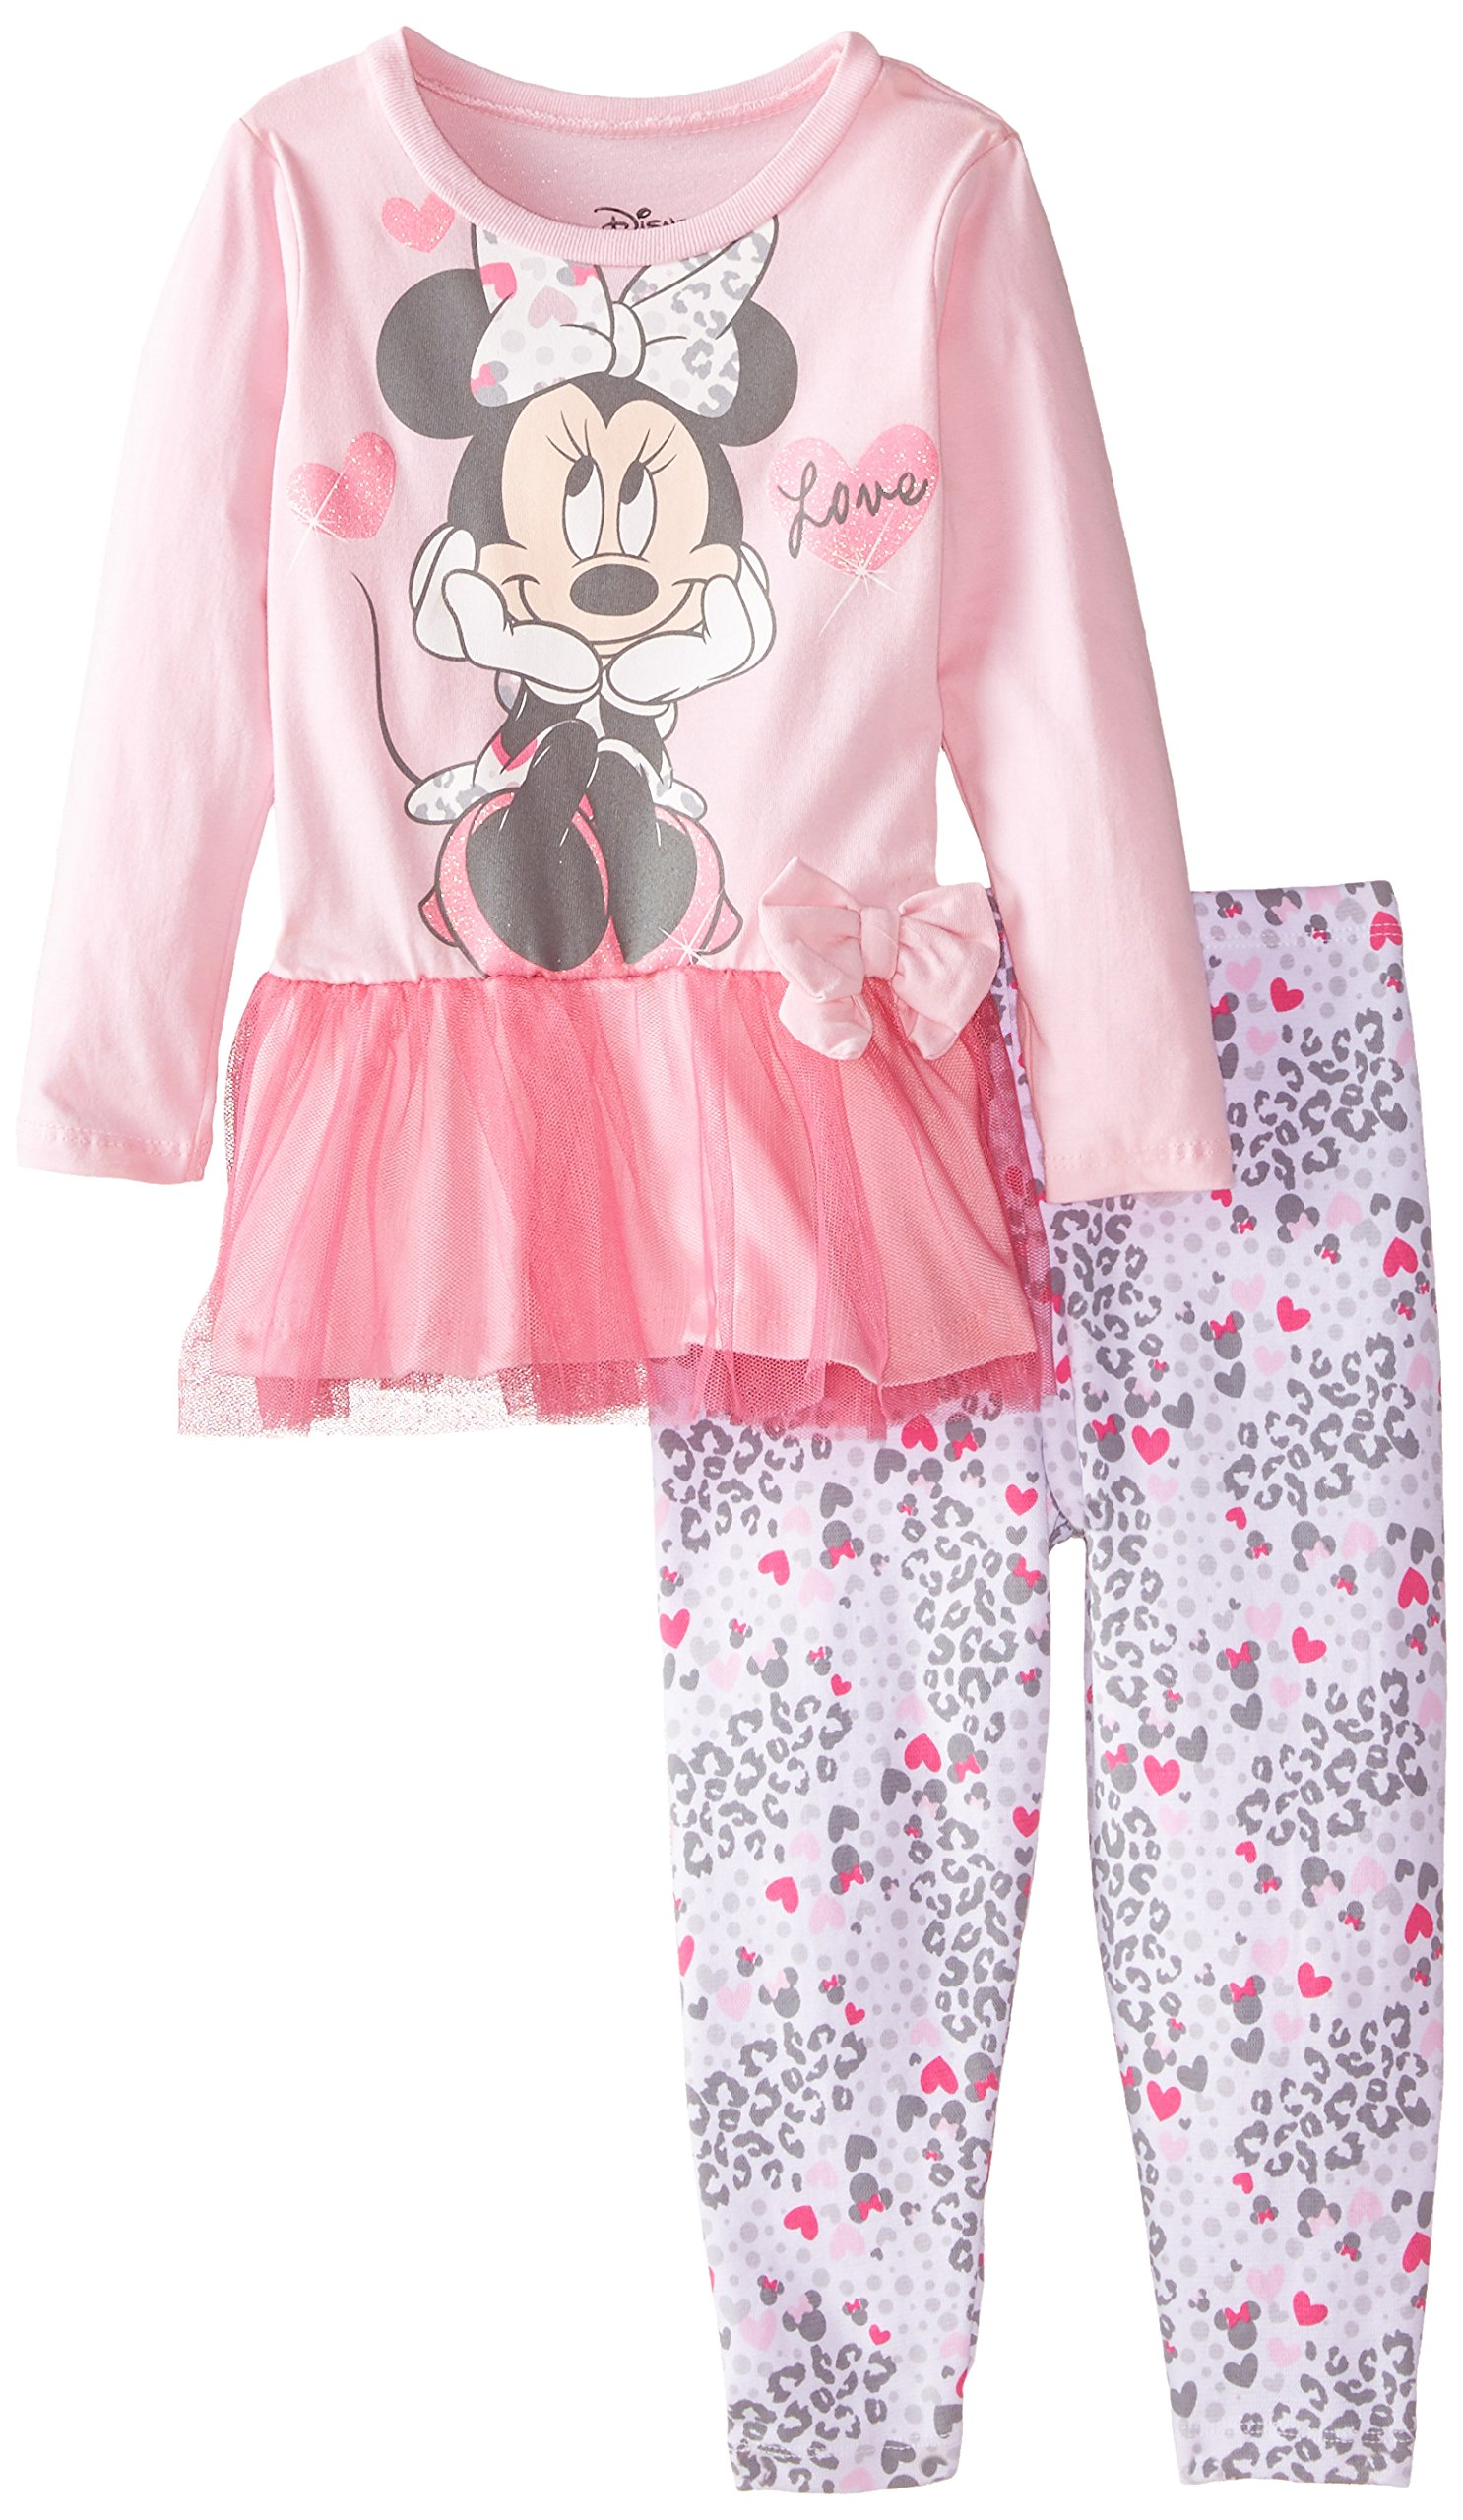 Disney Little Girls' Toddler Minnie Legging Set with Tulle Peplum Top Love, Pink, 2T